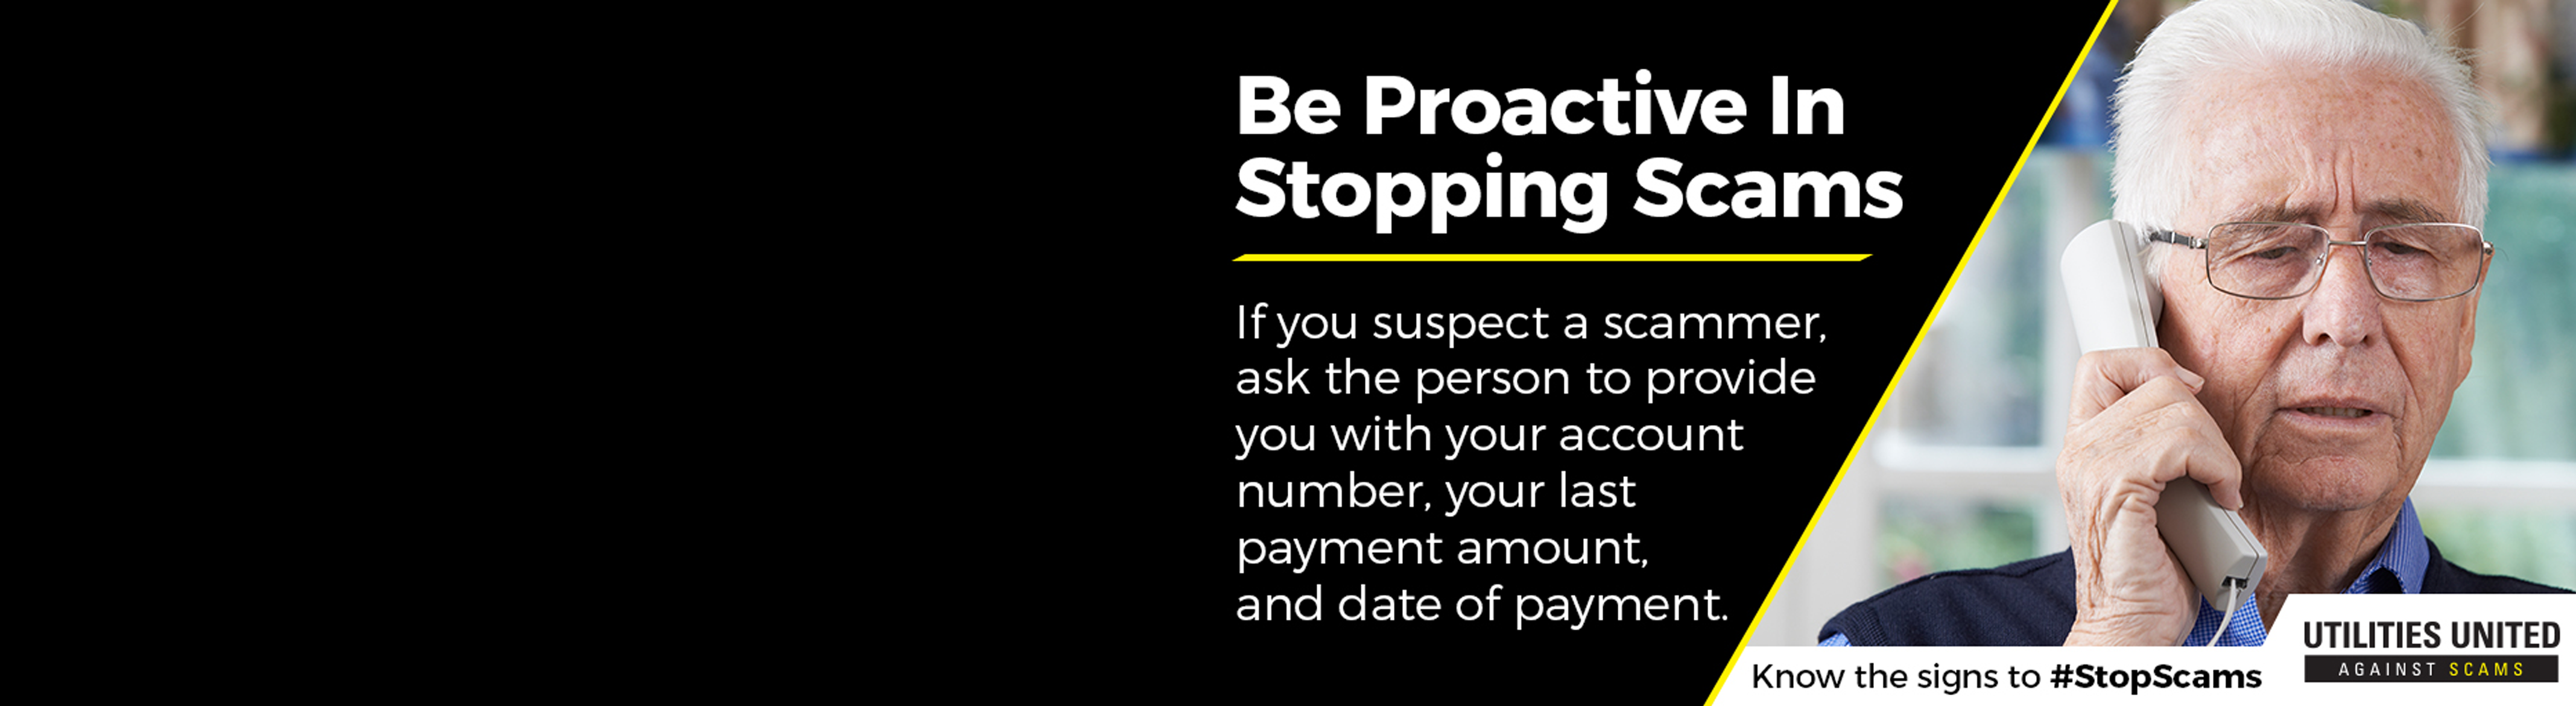 Be Proactive in Stopping Scams